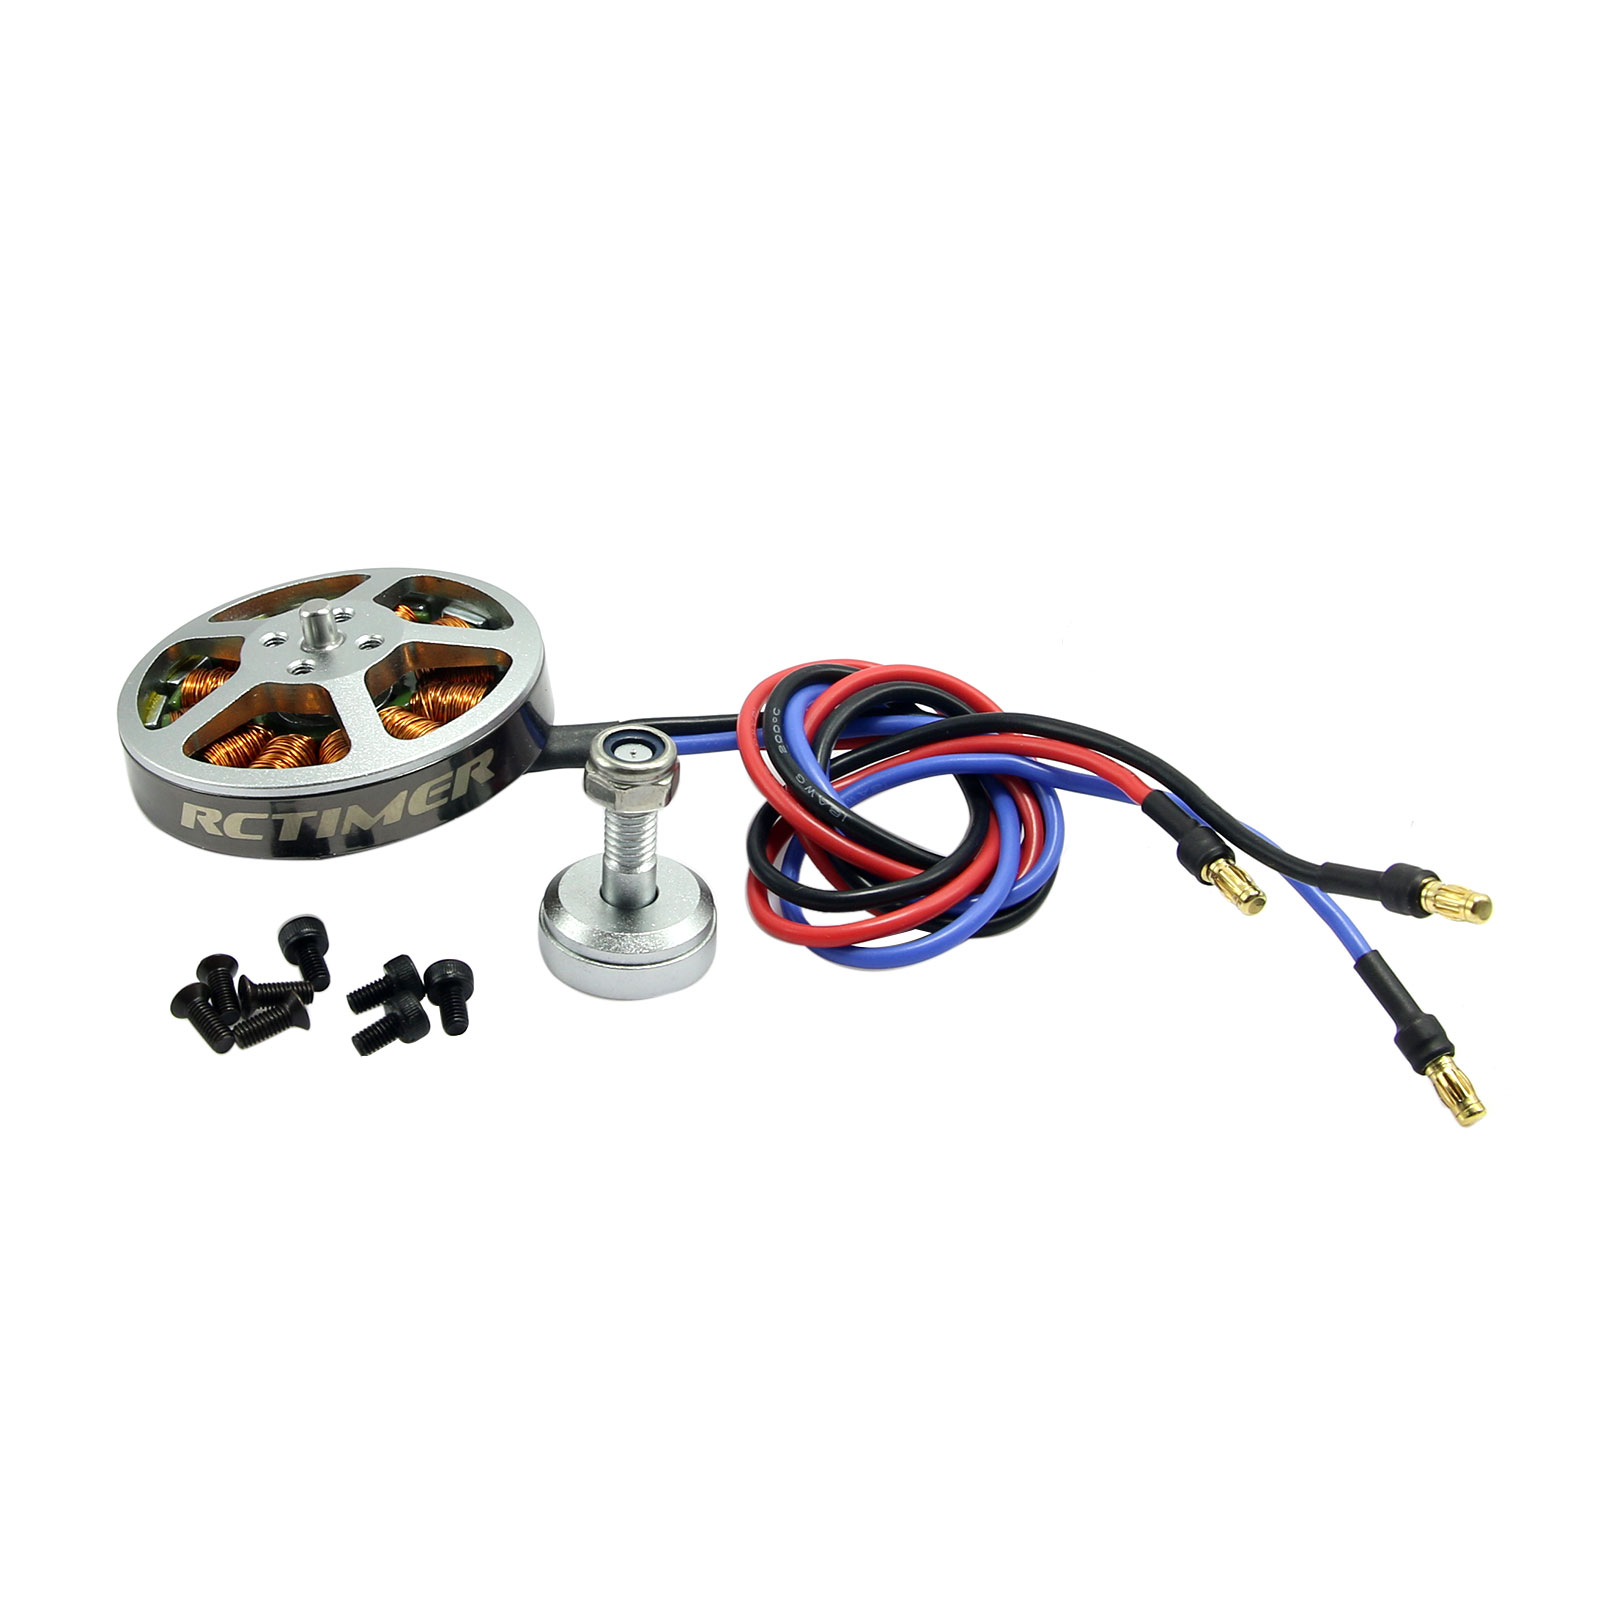 RCtimer 5010 360KV/530KV/620KV Disc Professional <font><b>Brushless</b></font> Motor for <font><b>FPV</b></font> <font><b>Drone</b></font> Quadcopter Multirotor image